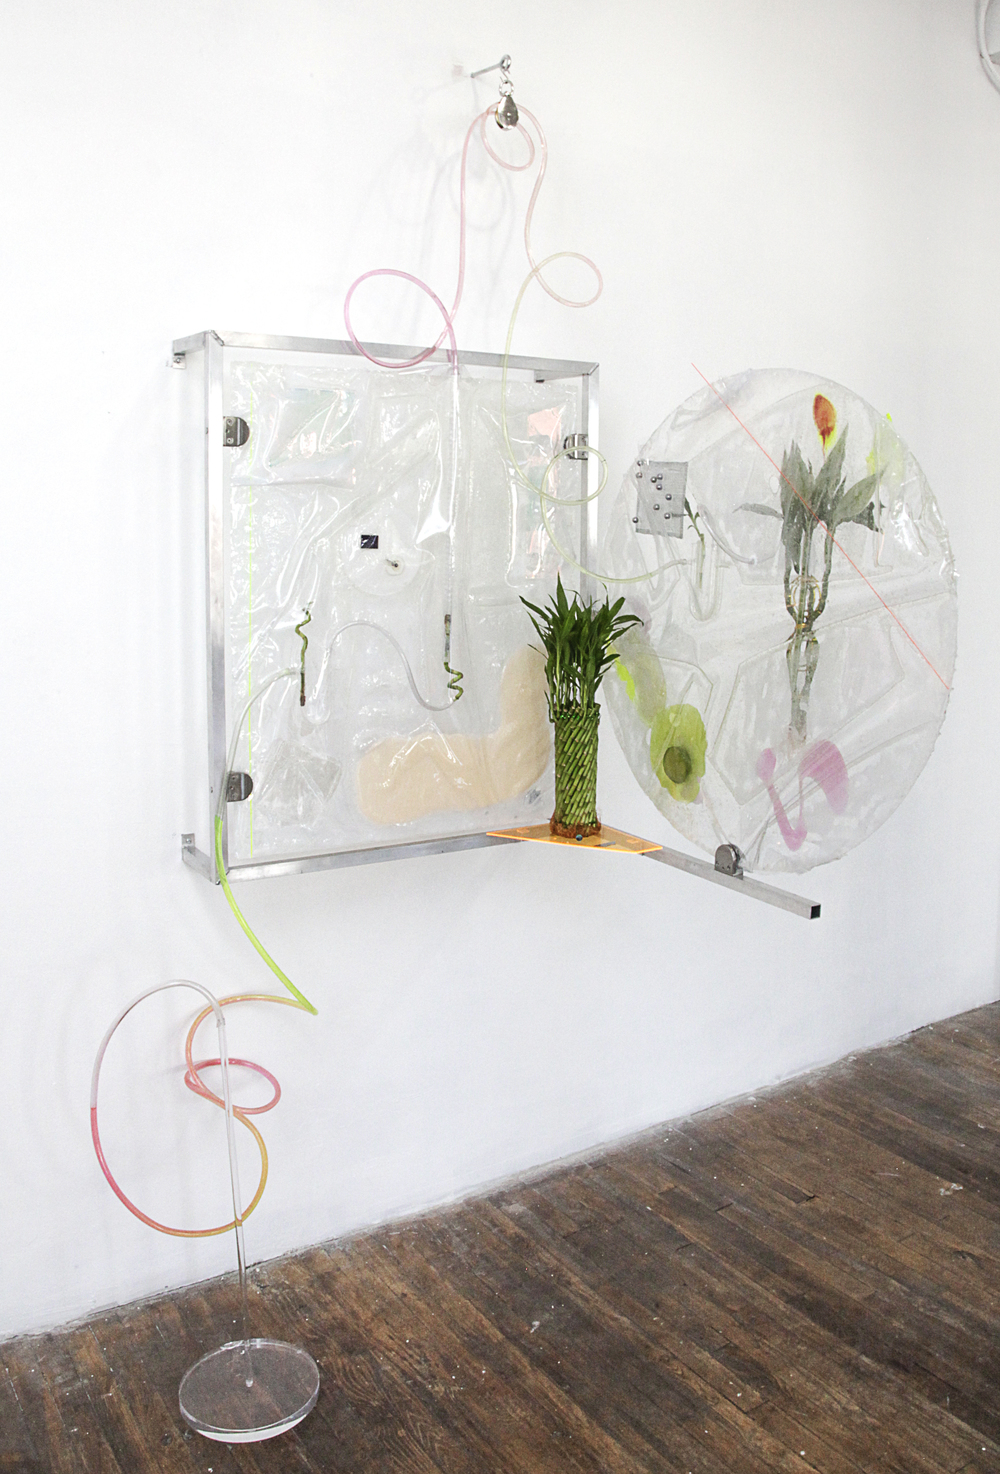 Heidi Norton, The Plight (feeding Systems), 2015, Acrylic, dielectric glass, resin, vinyl, bamboo, tubing, electrodes with thermal switch,  burner screen, pulley, crystal soil water beads, U- shaped draying tubes, aluminum frame, LCD screens, ball bearings